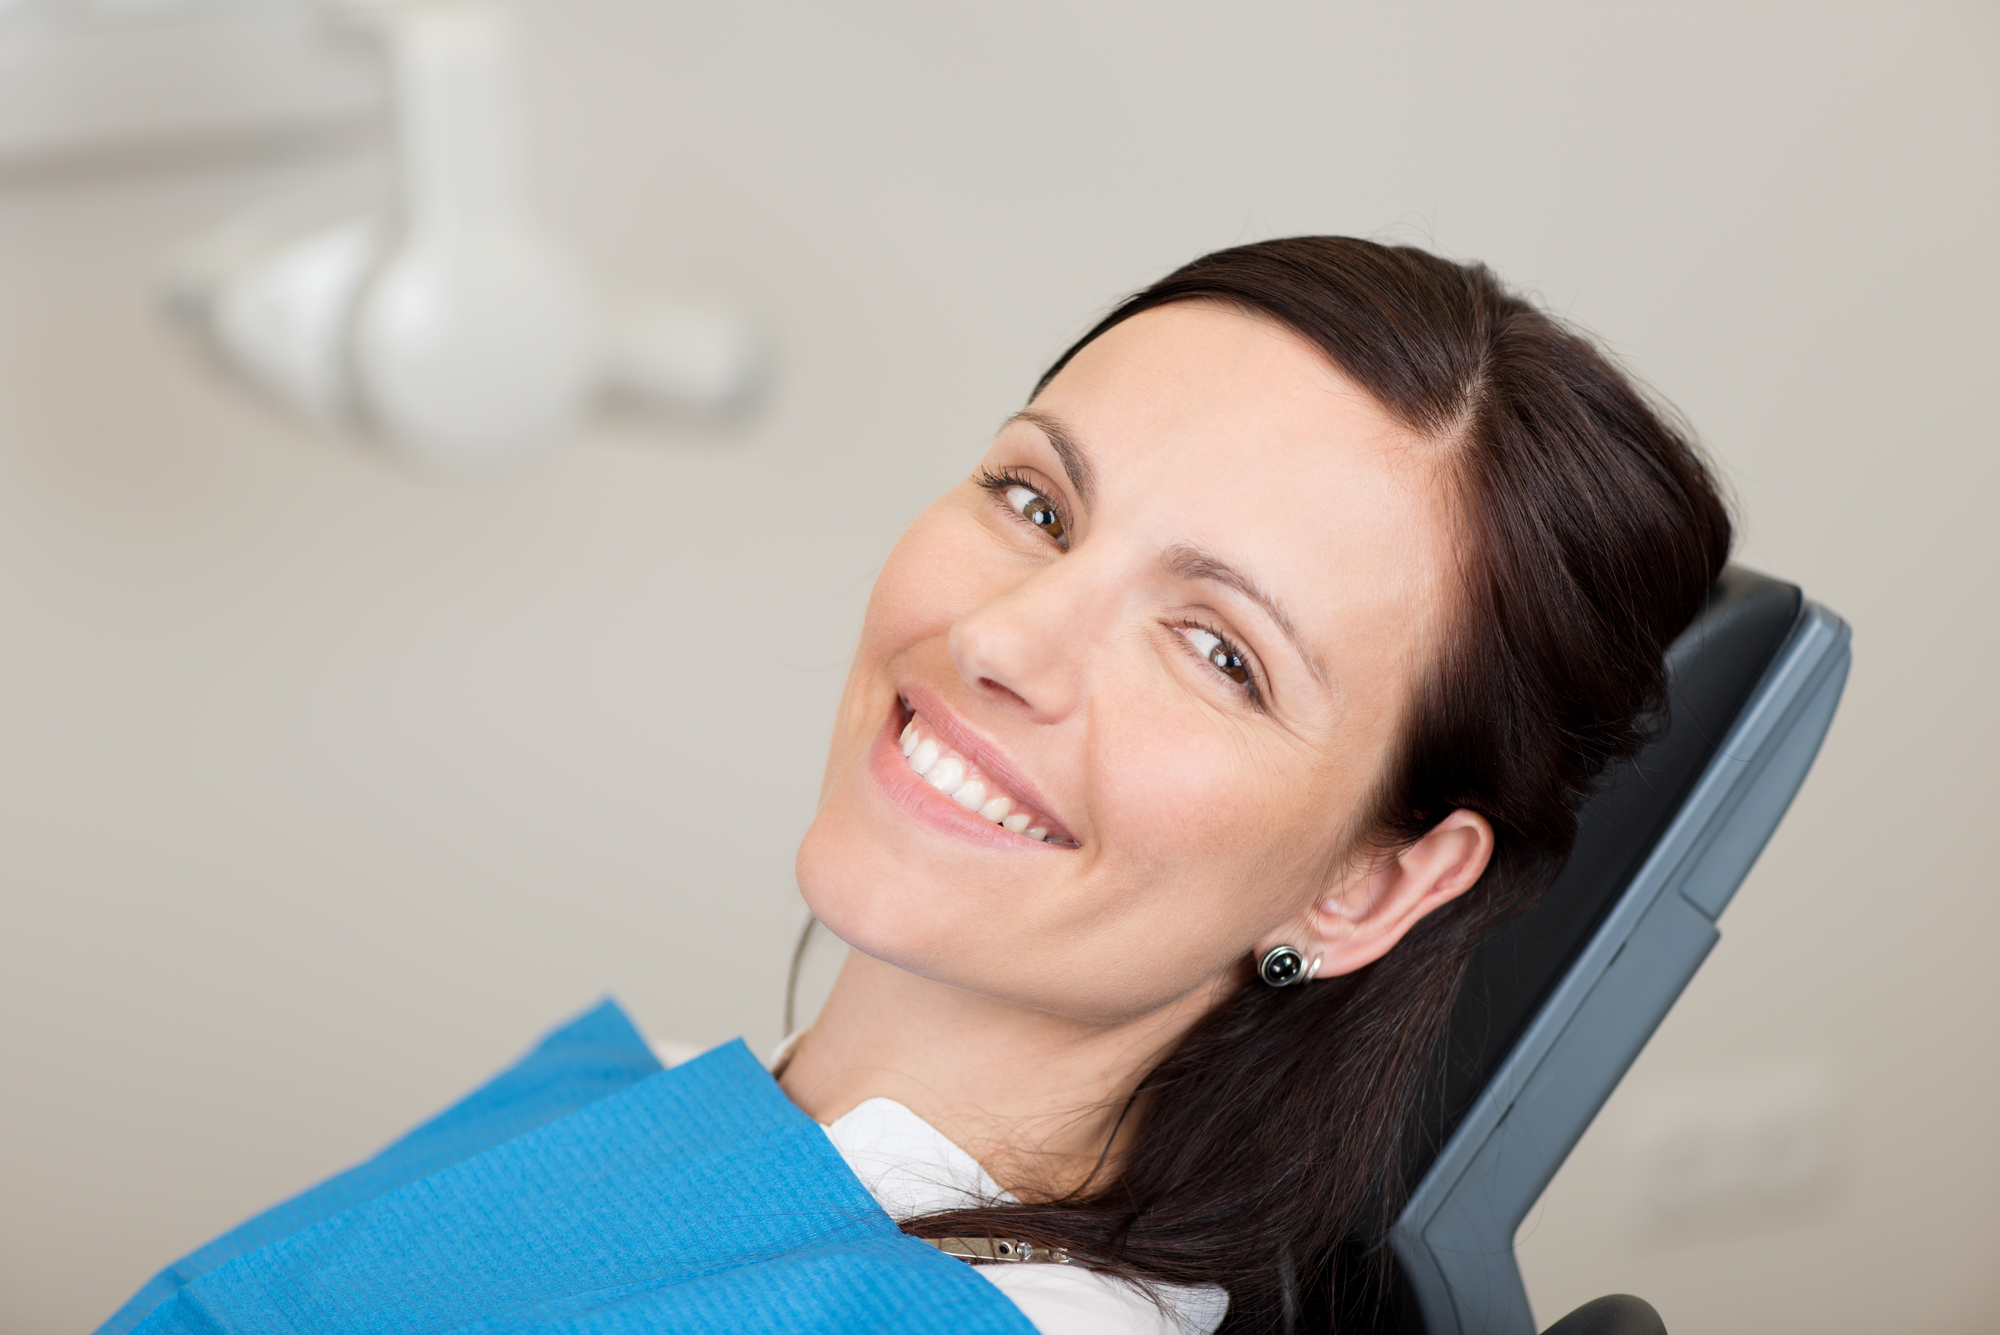 who is a good oral surgeon miami beach?